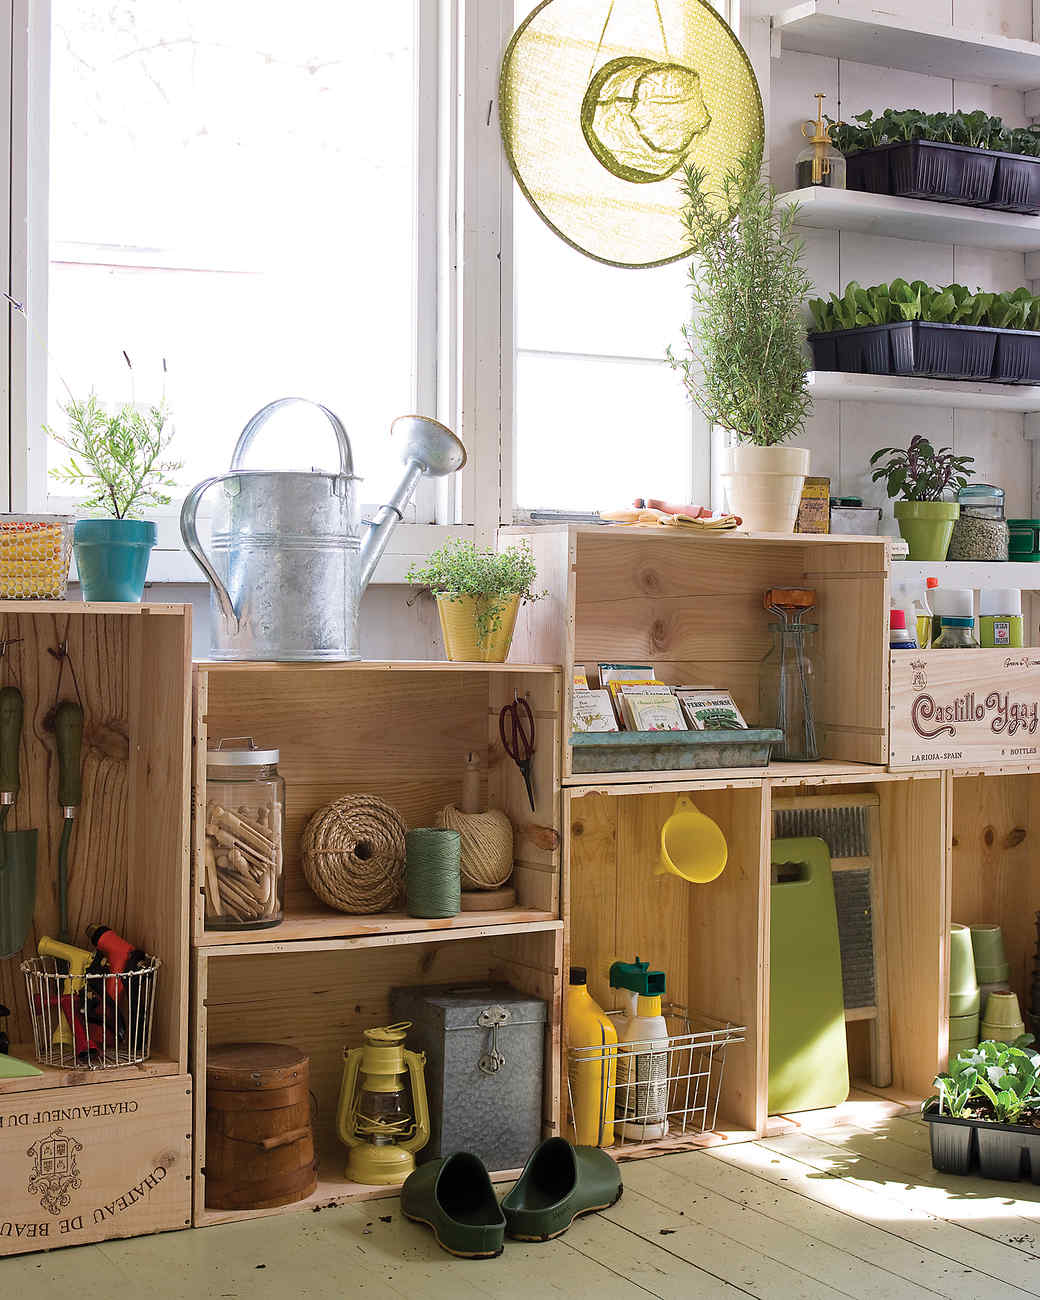 Garden-Shed Crate Cabinets